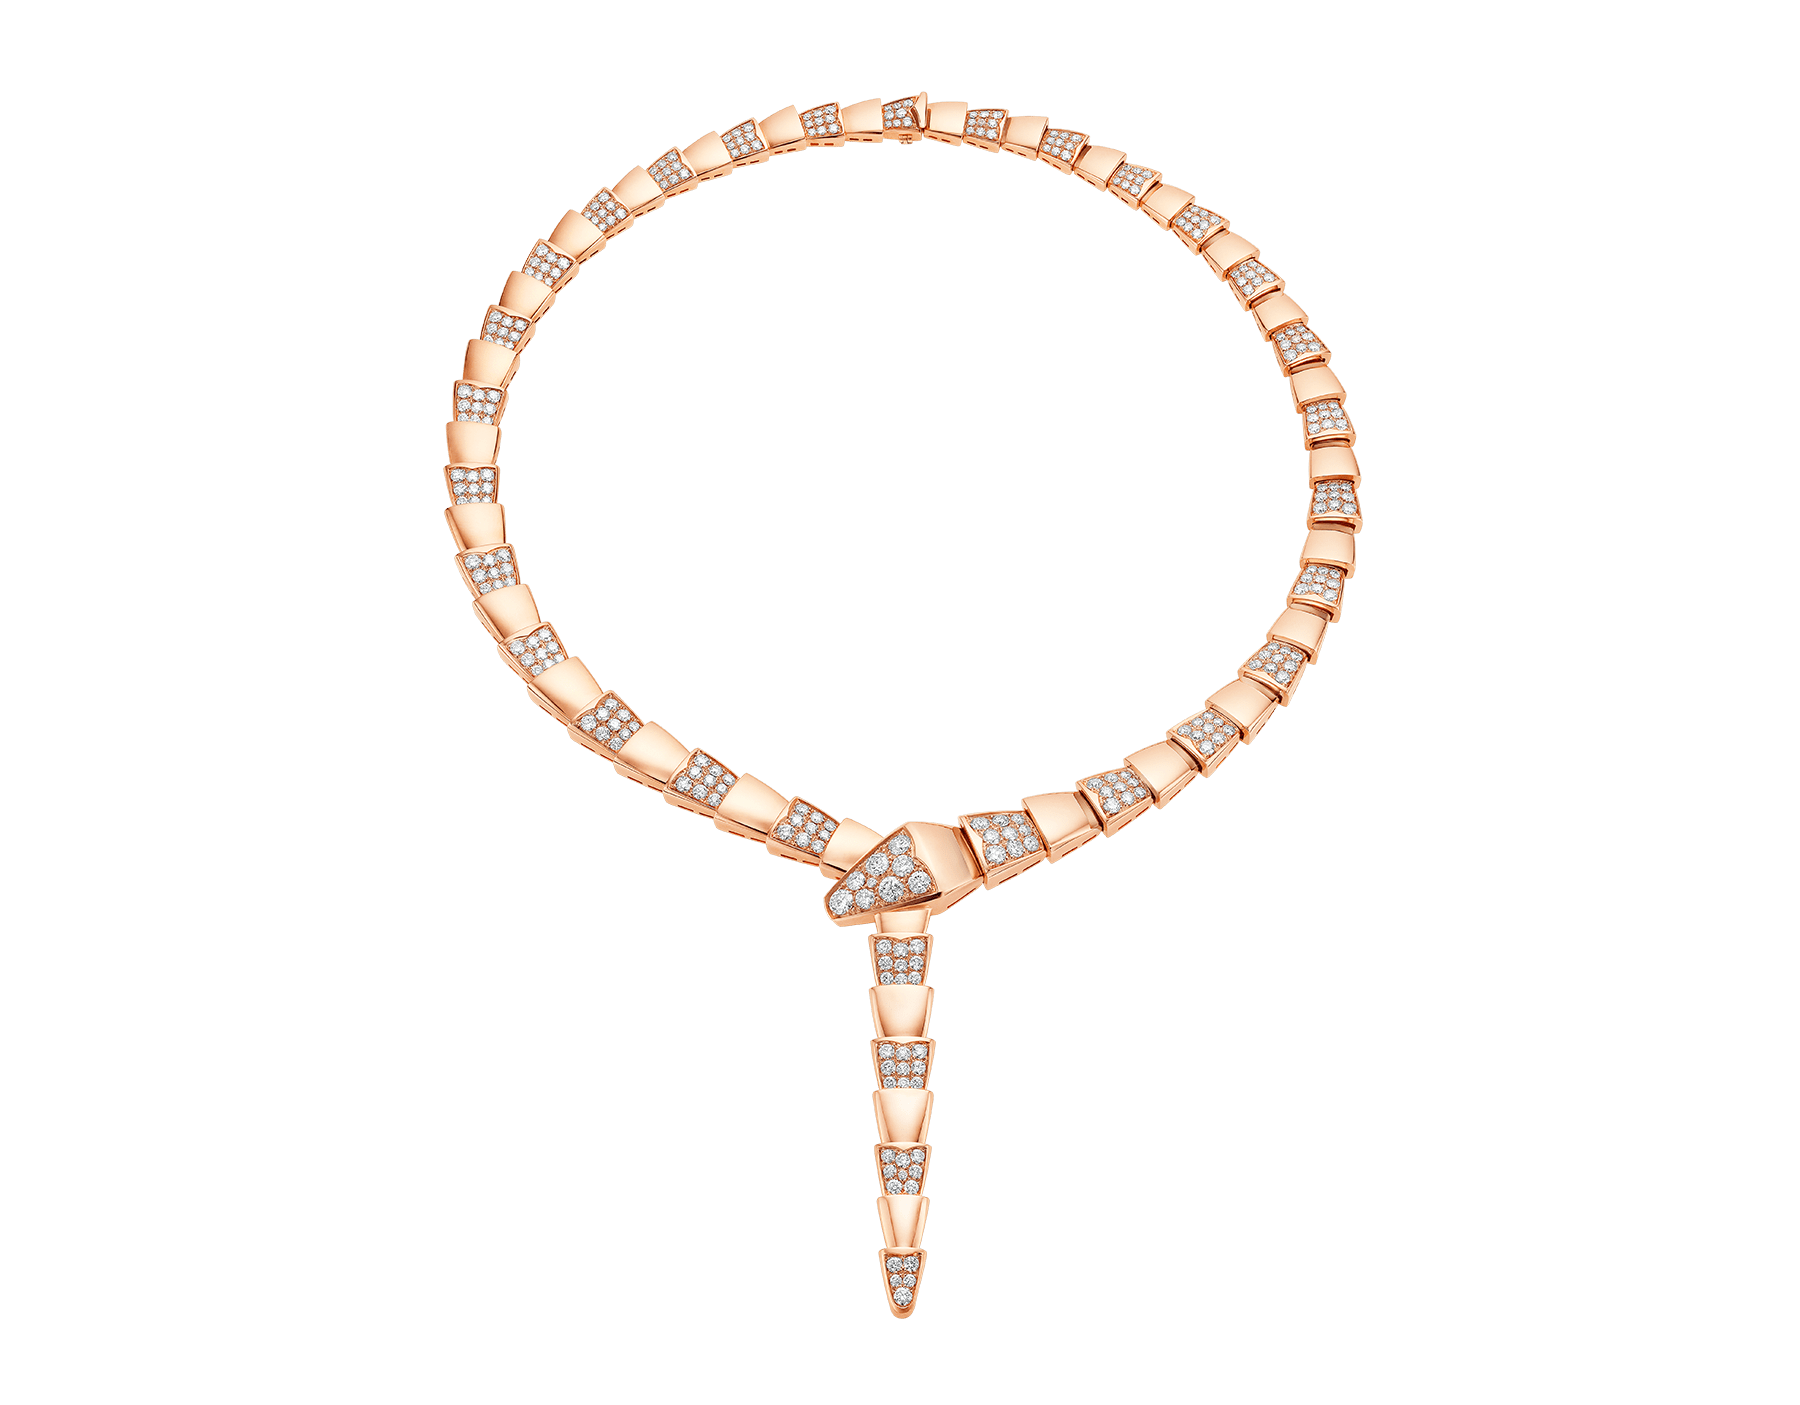 Serpenti necklace in 18 kt rose gold, set with demi pavé diamonds. 348166 image 1